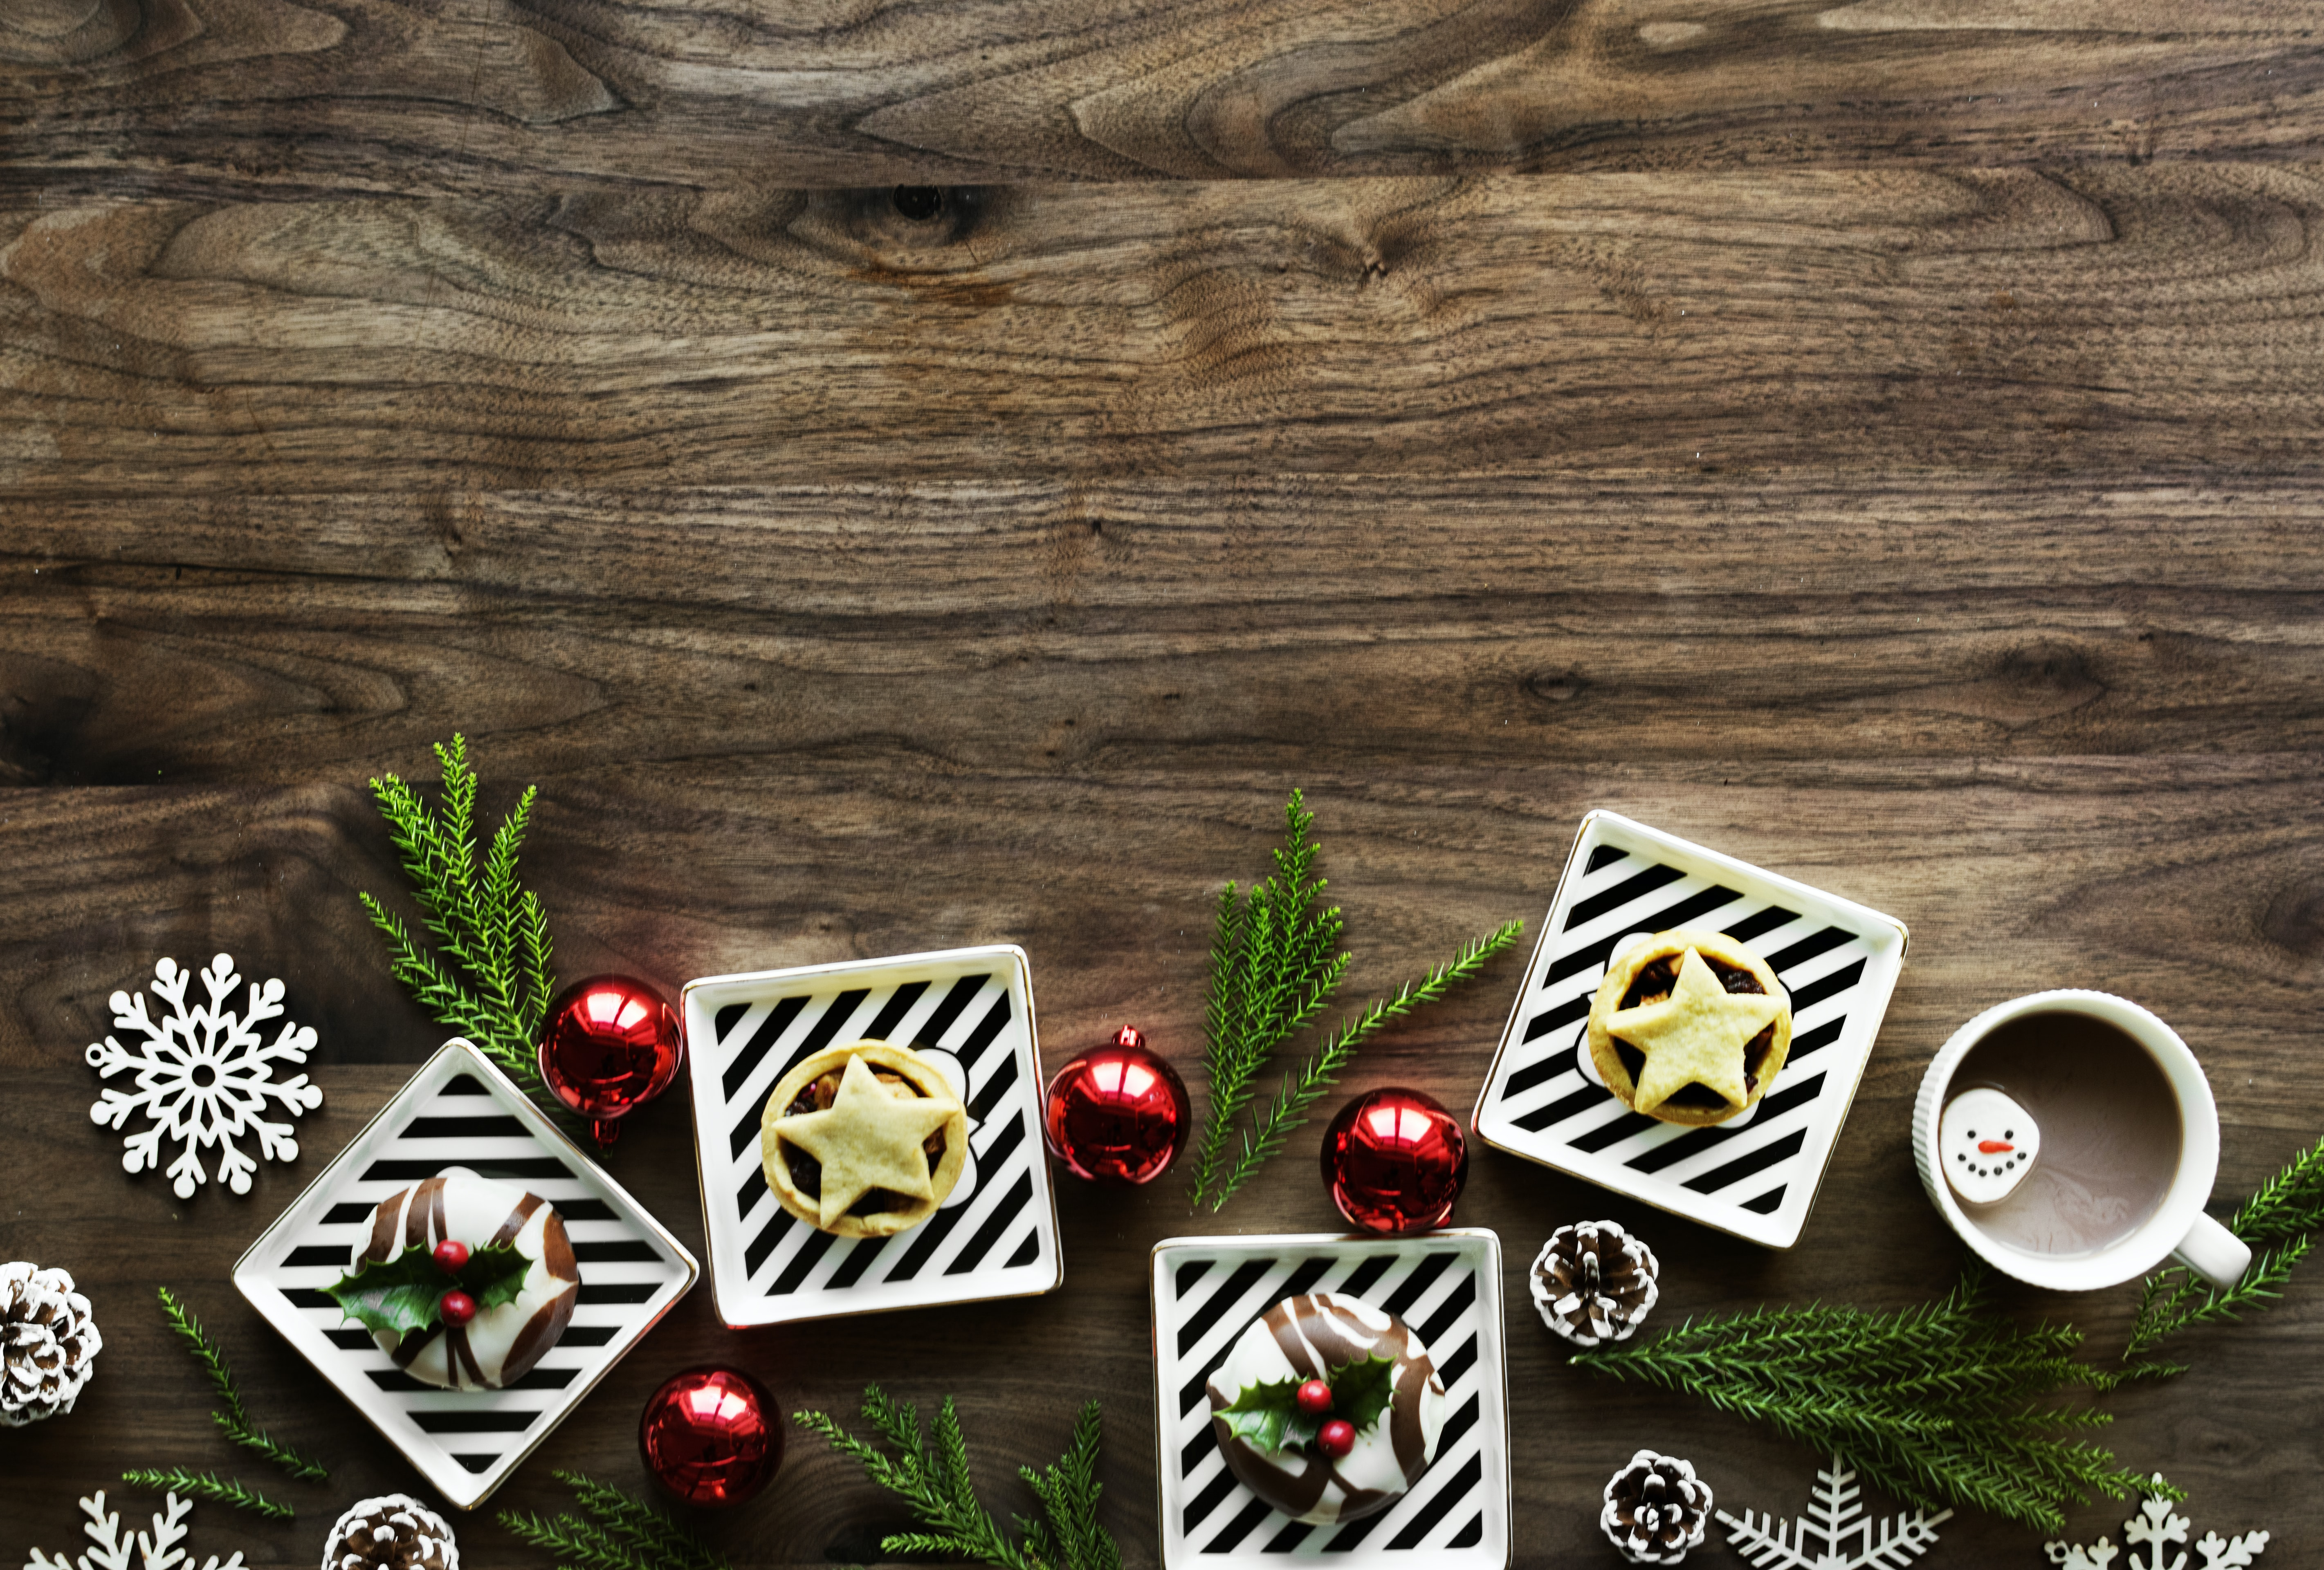 assorted Christmas decors with pastry on top of brown wooden surface